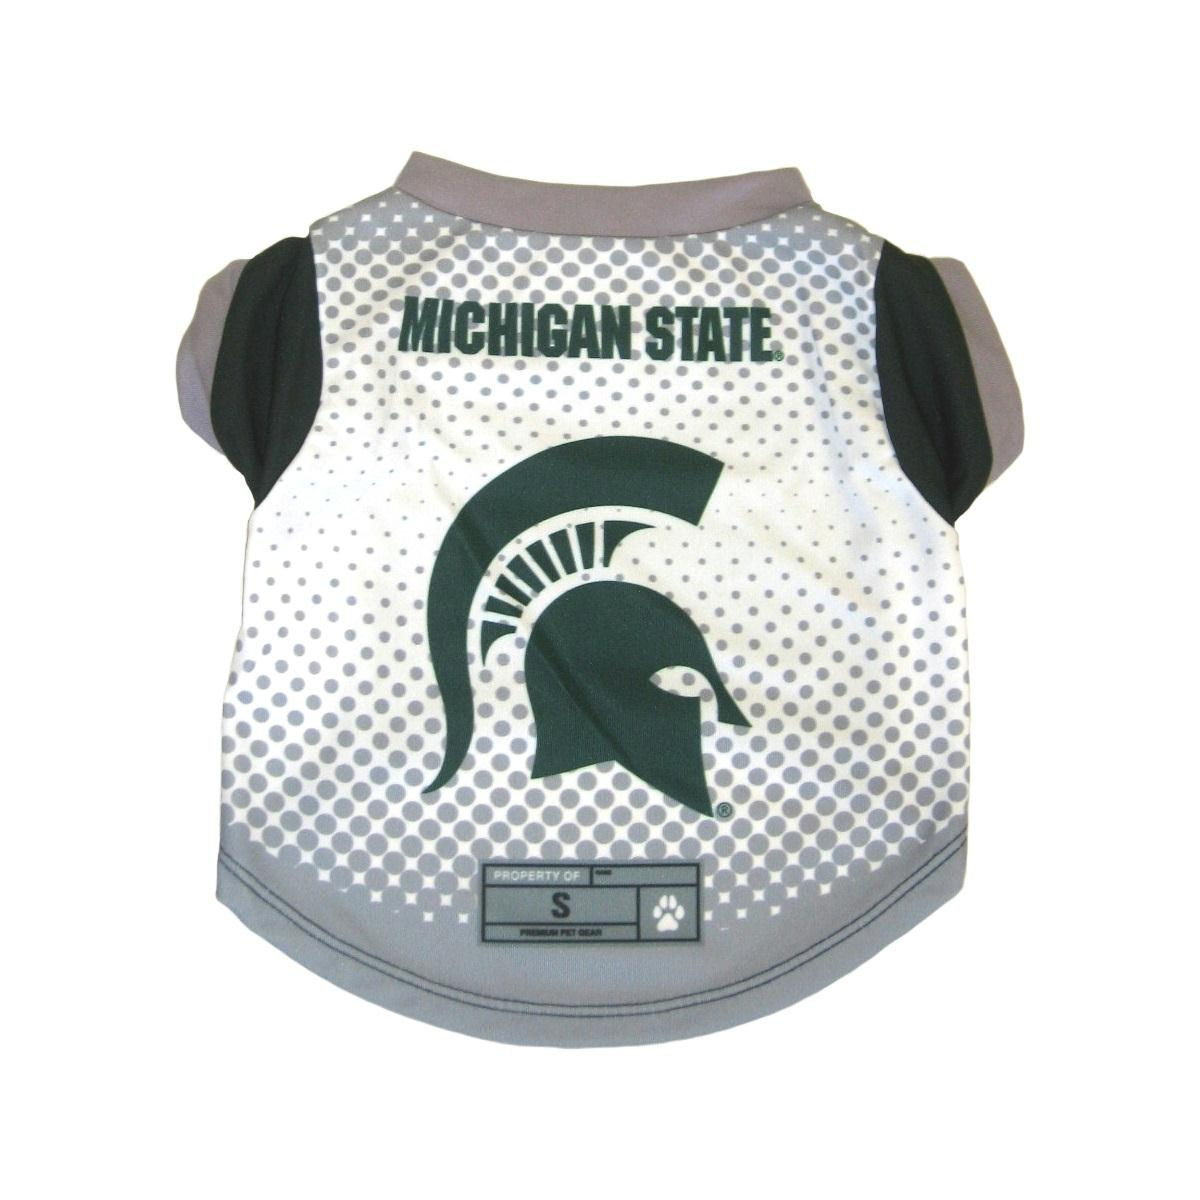 Michigan State Spartans Pet Performance Tee - Small